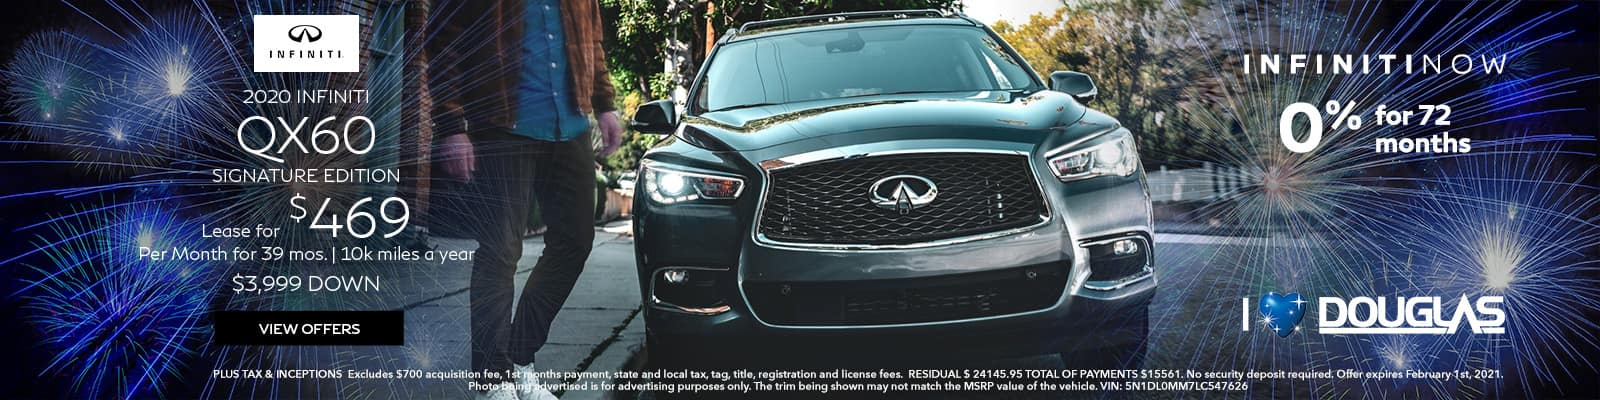 final-douglas-infiniti-january-qx60-special-banner-1600×400